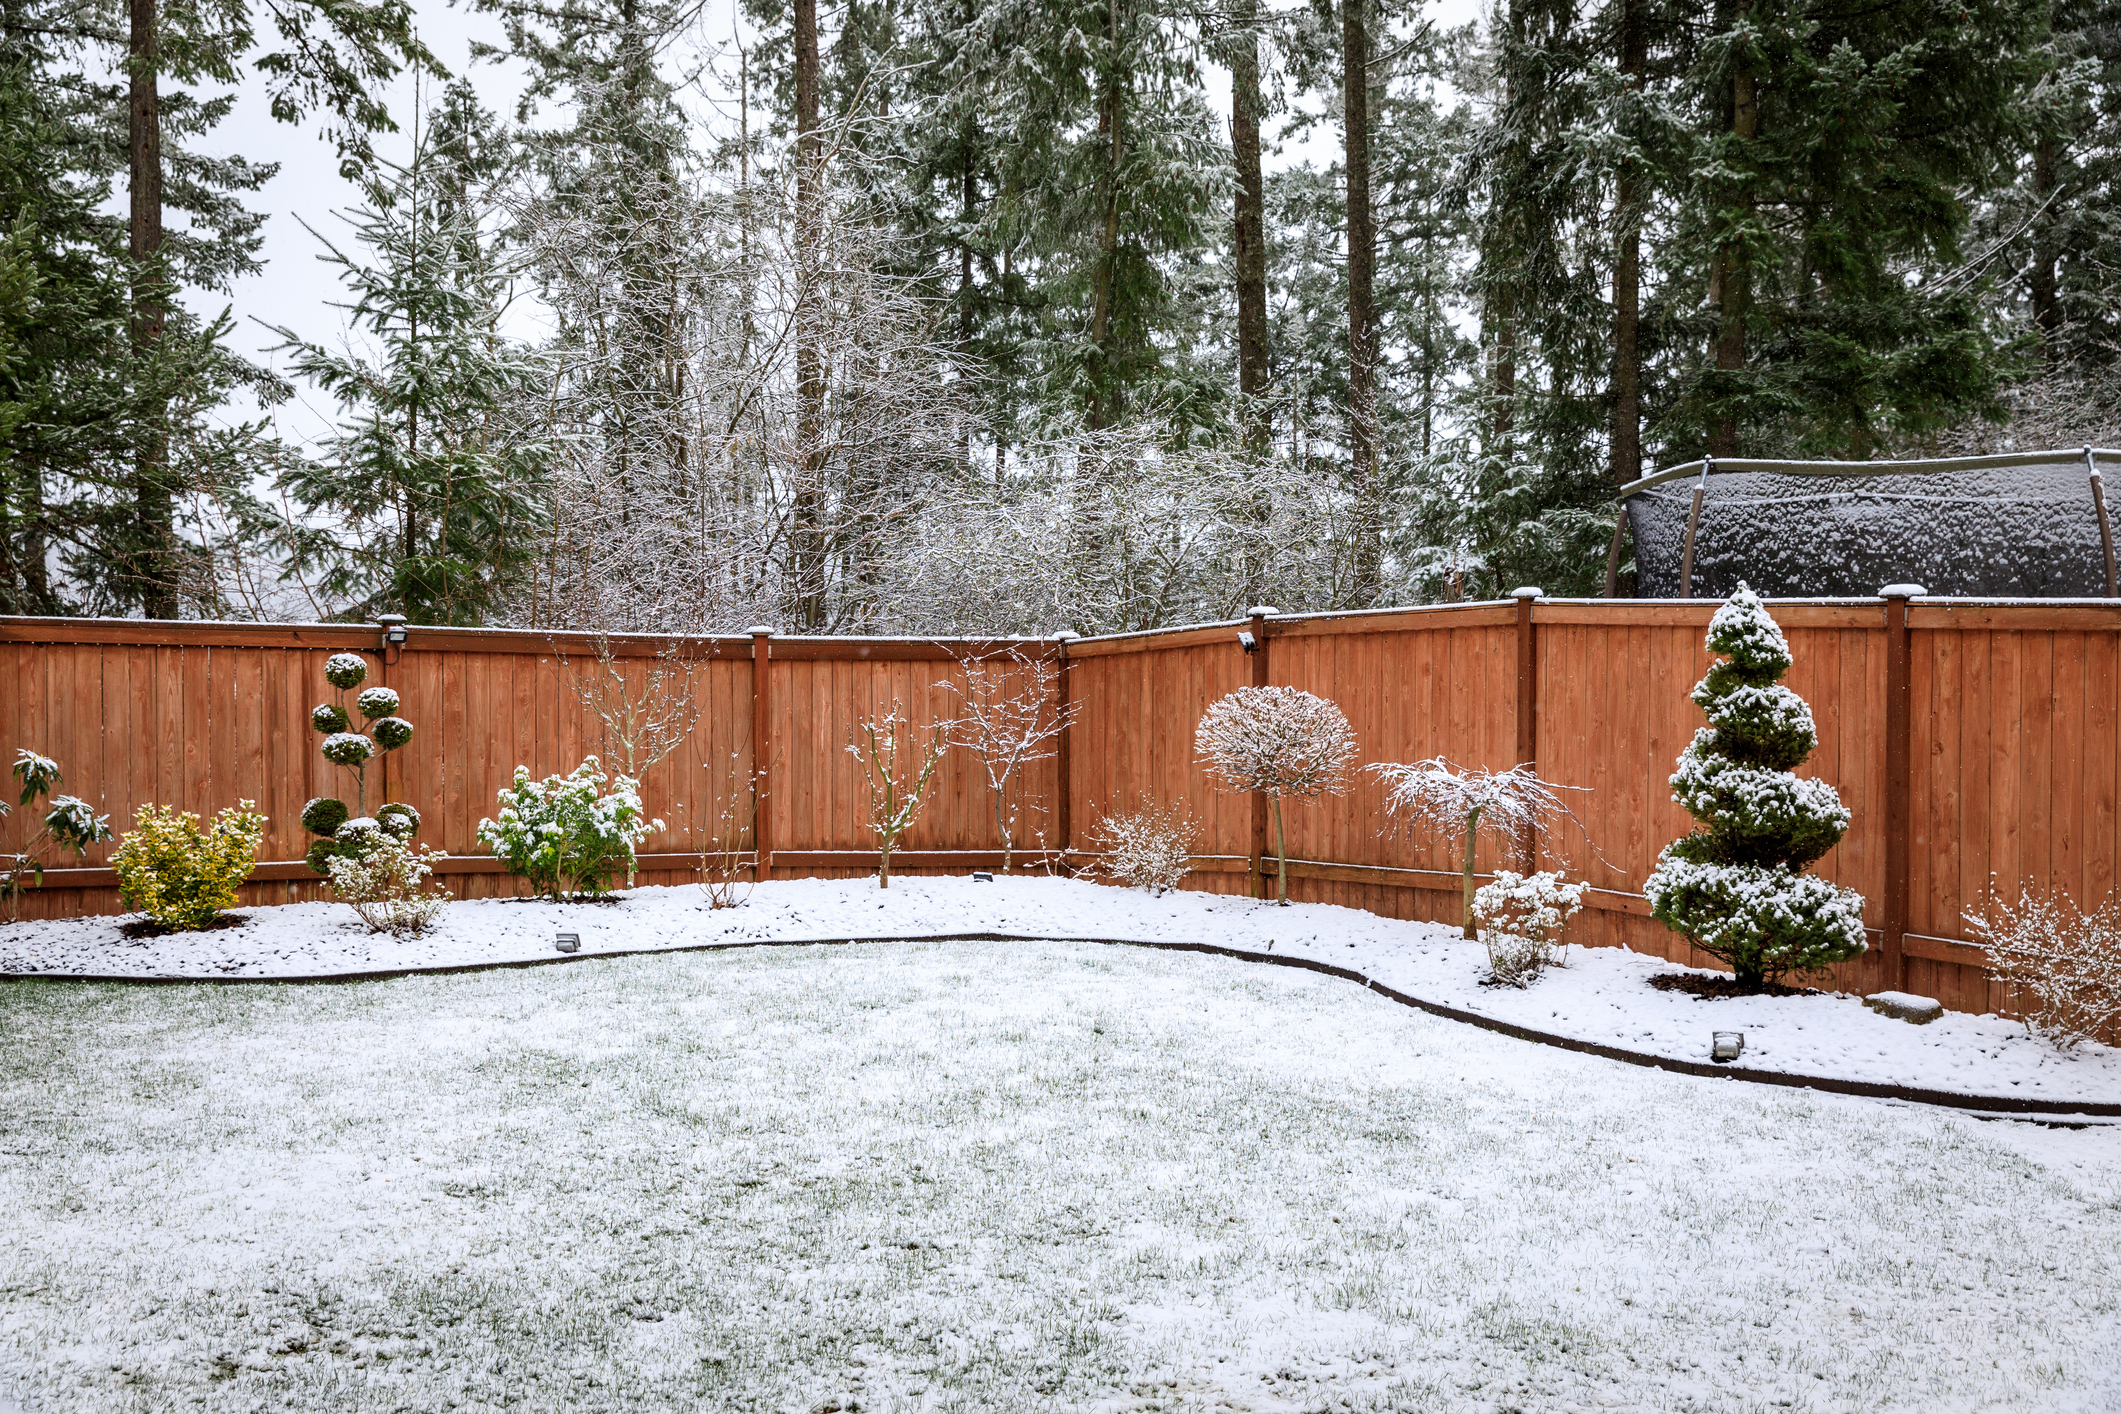 Say It Ain't Snow! Preparing Your Lawn For Winter - Featured Image